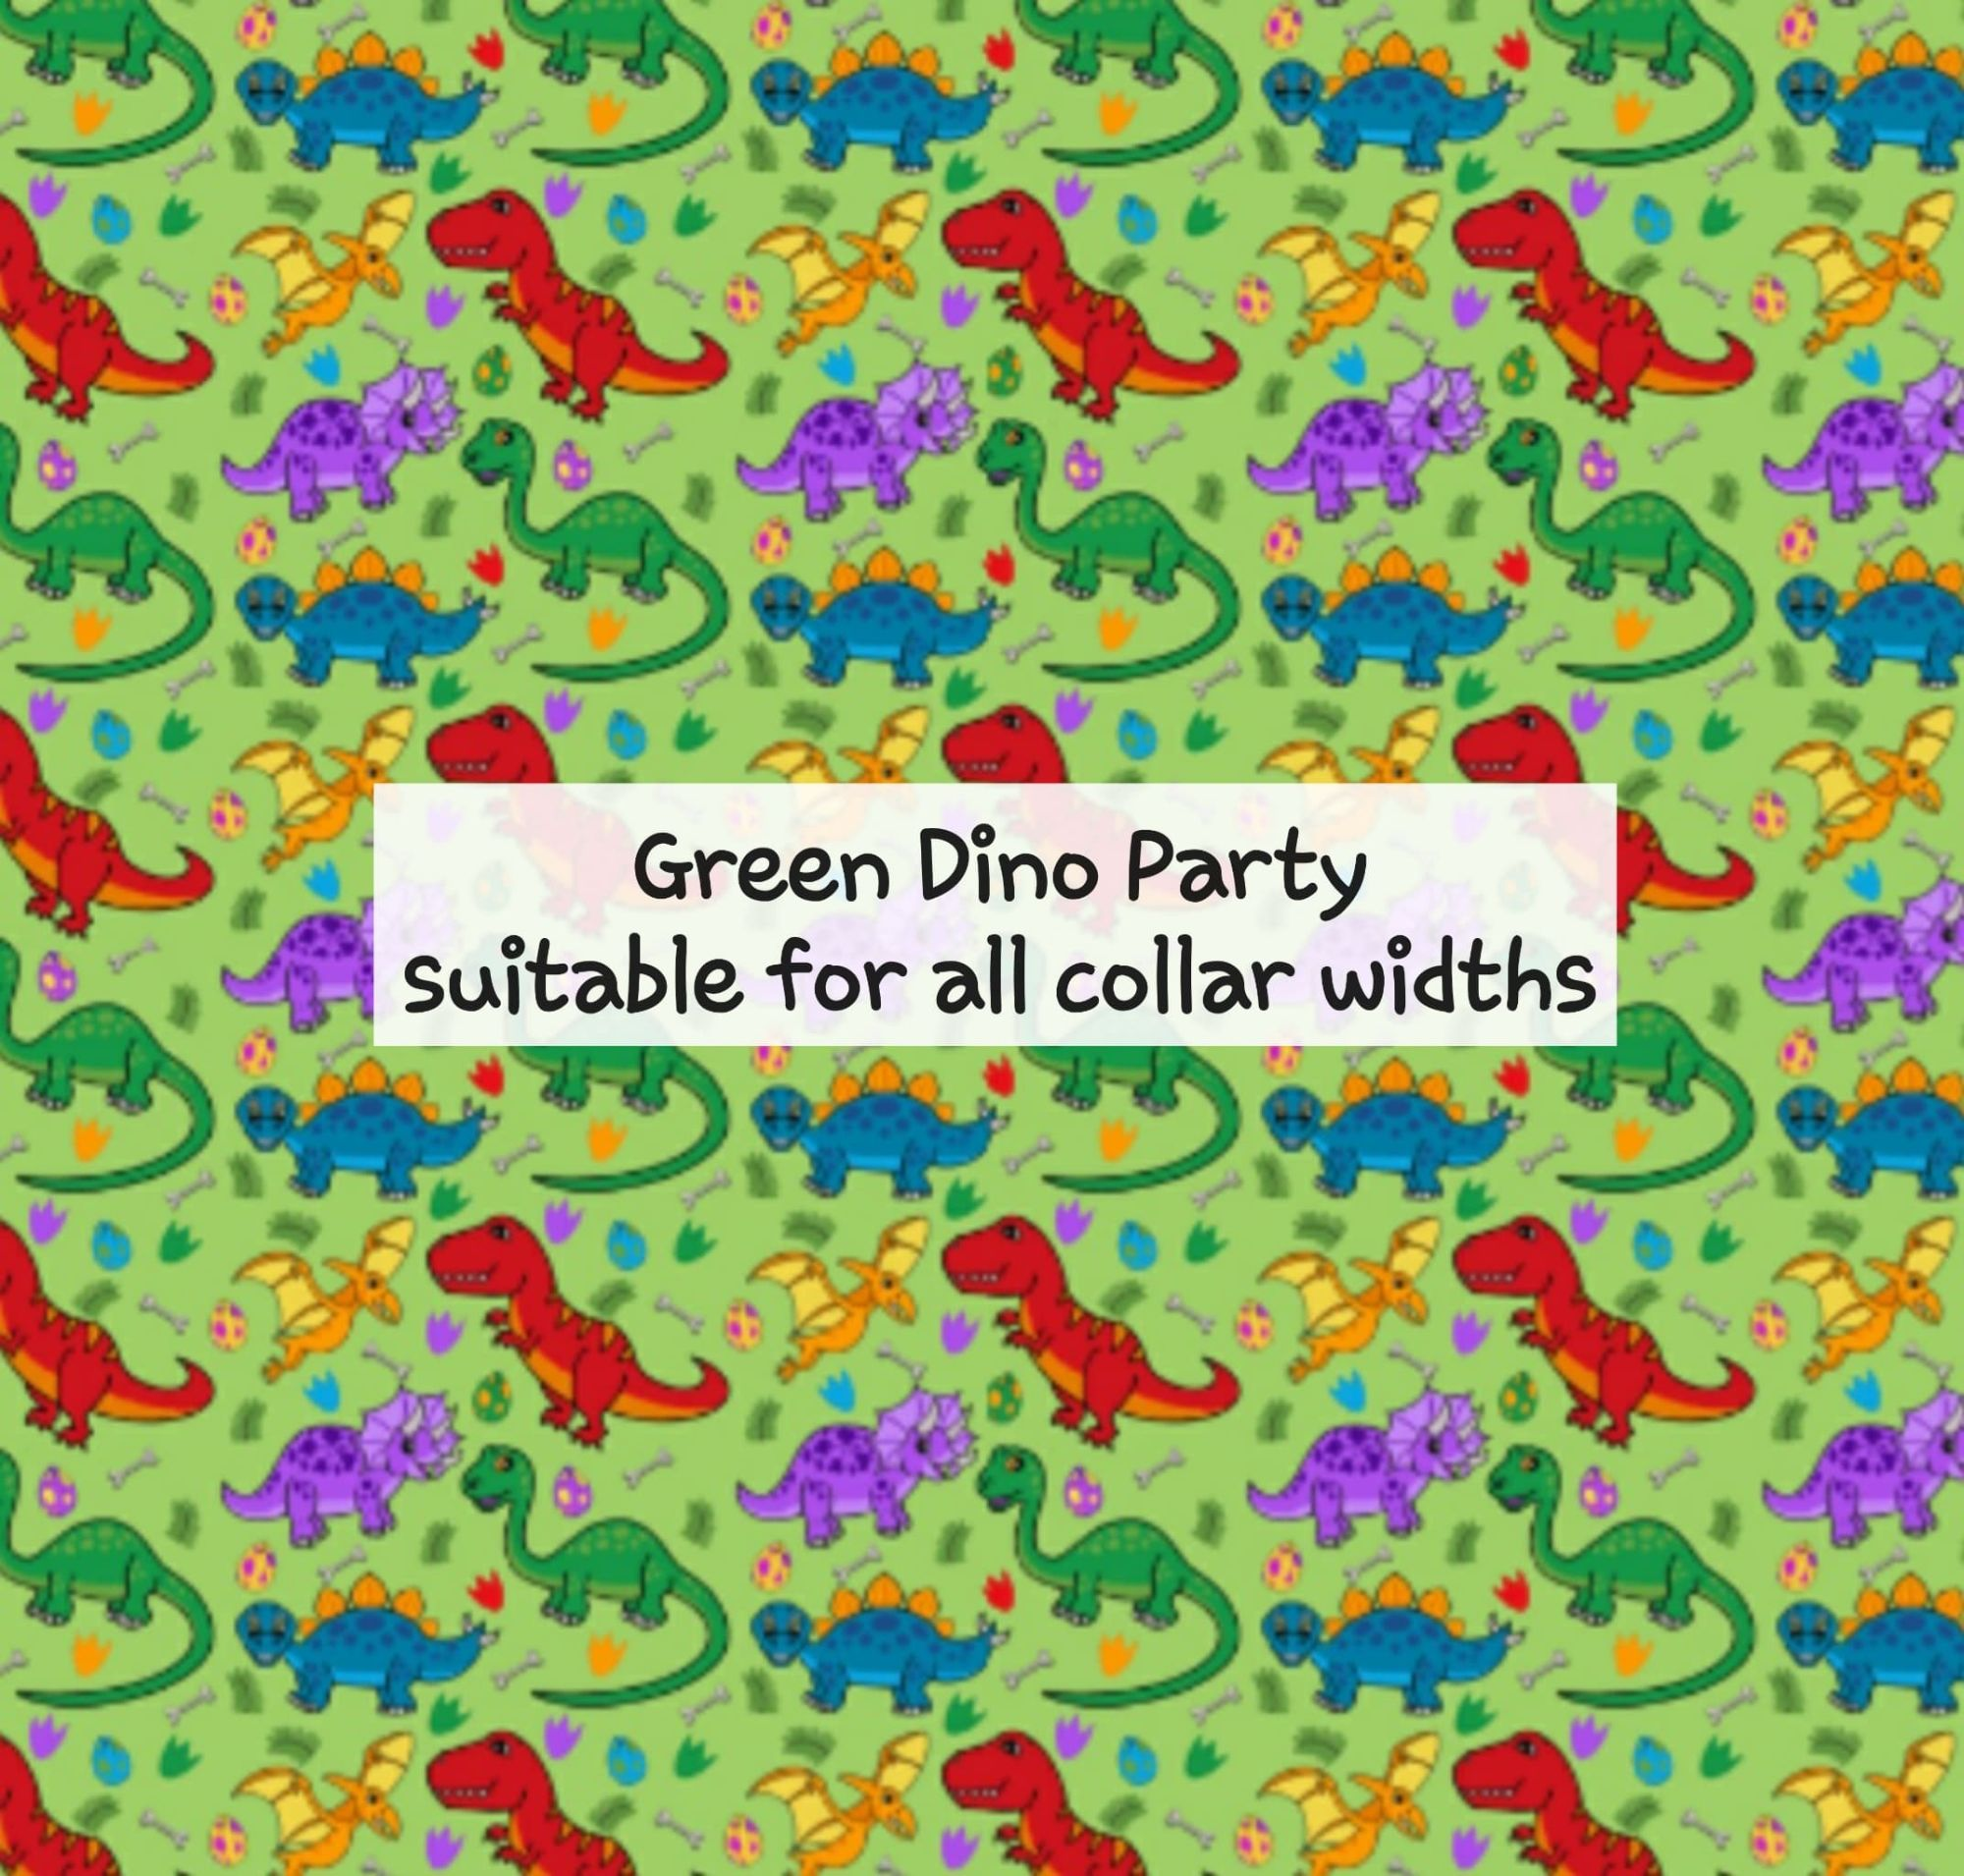 Green Dino Party - Suitable for all collar widths